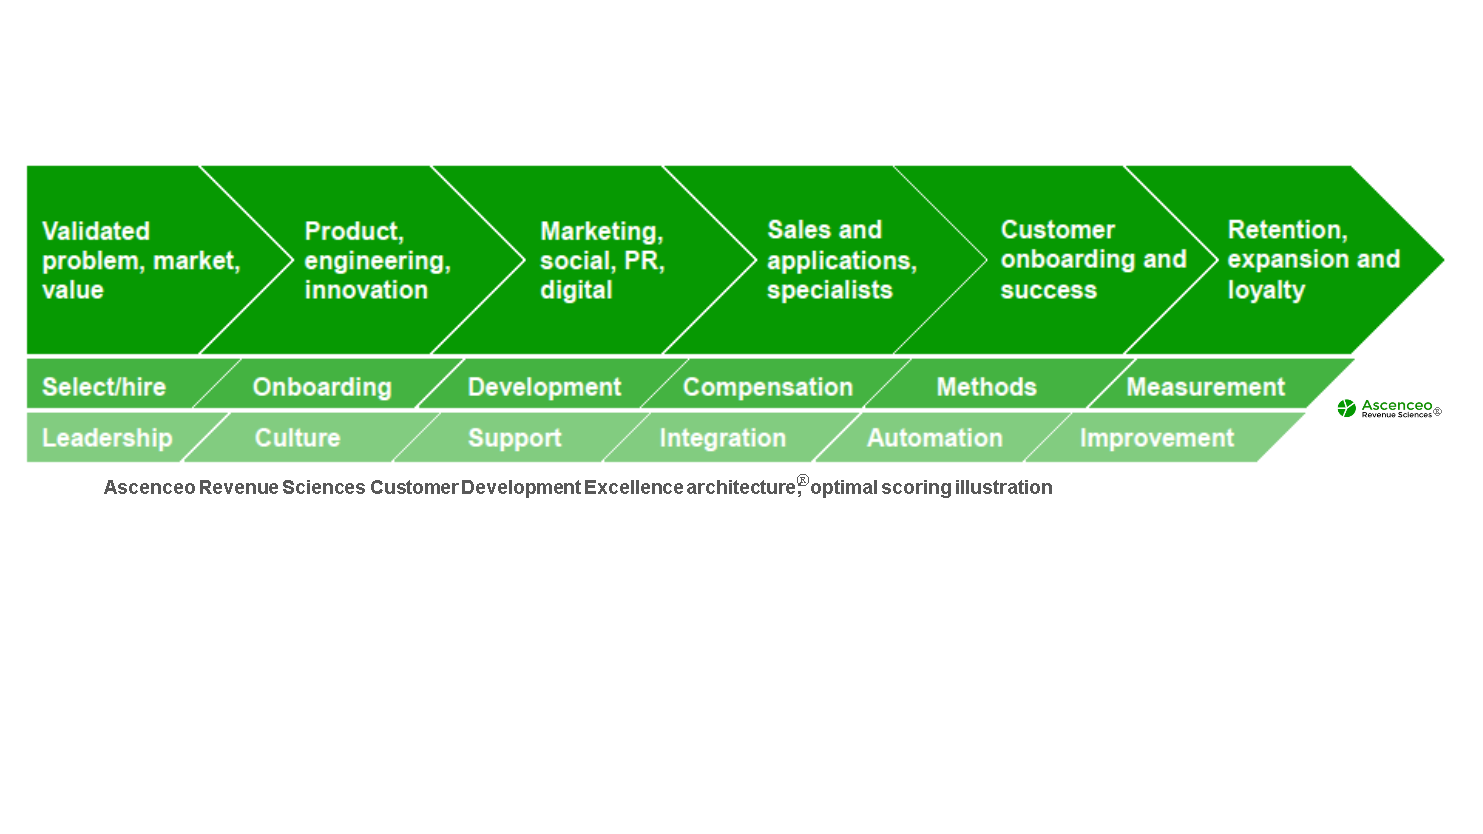 Ascenceo's Customer Development Excellence Architecture®(ACDEA). The ACDEA architecture evaluates the entire customer development process. It includes core processes like sales, marketing,customer onboarding and customer service. ACDEA provides a framework to evaluate, test, and score performance of each functional area in a specific company. Our   science   pinpoints sources and gaps to higher customer development and sales revenue performance.